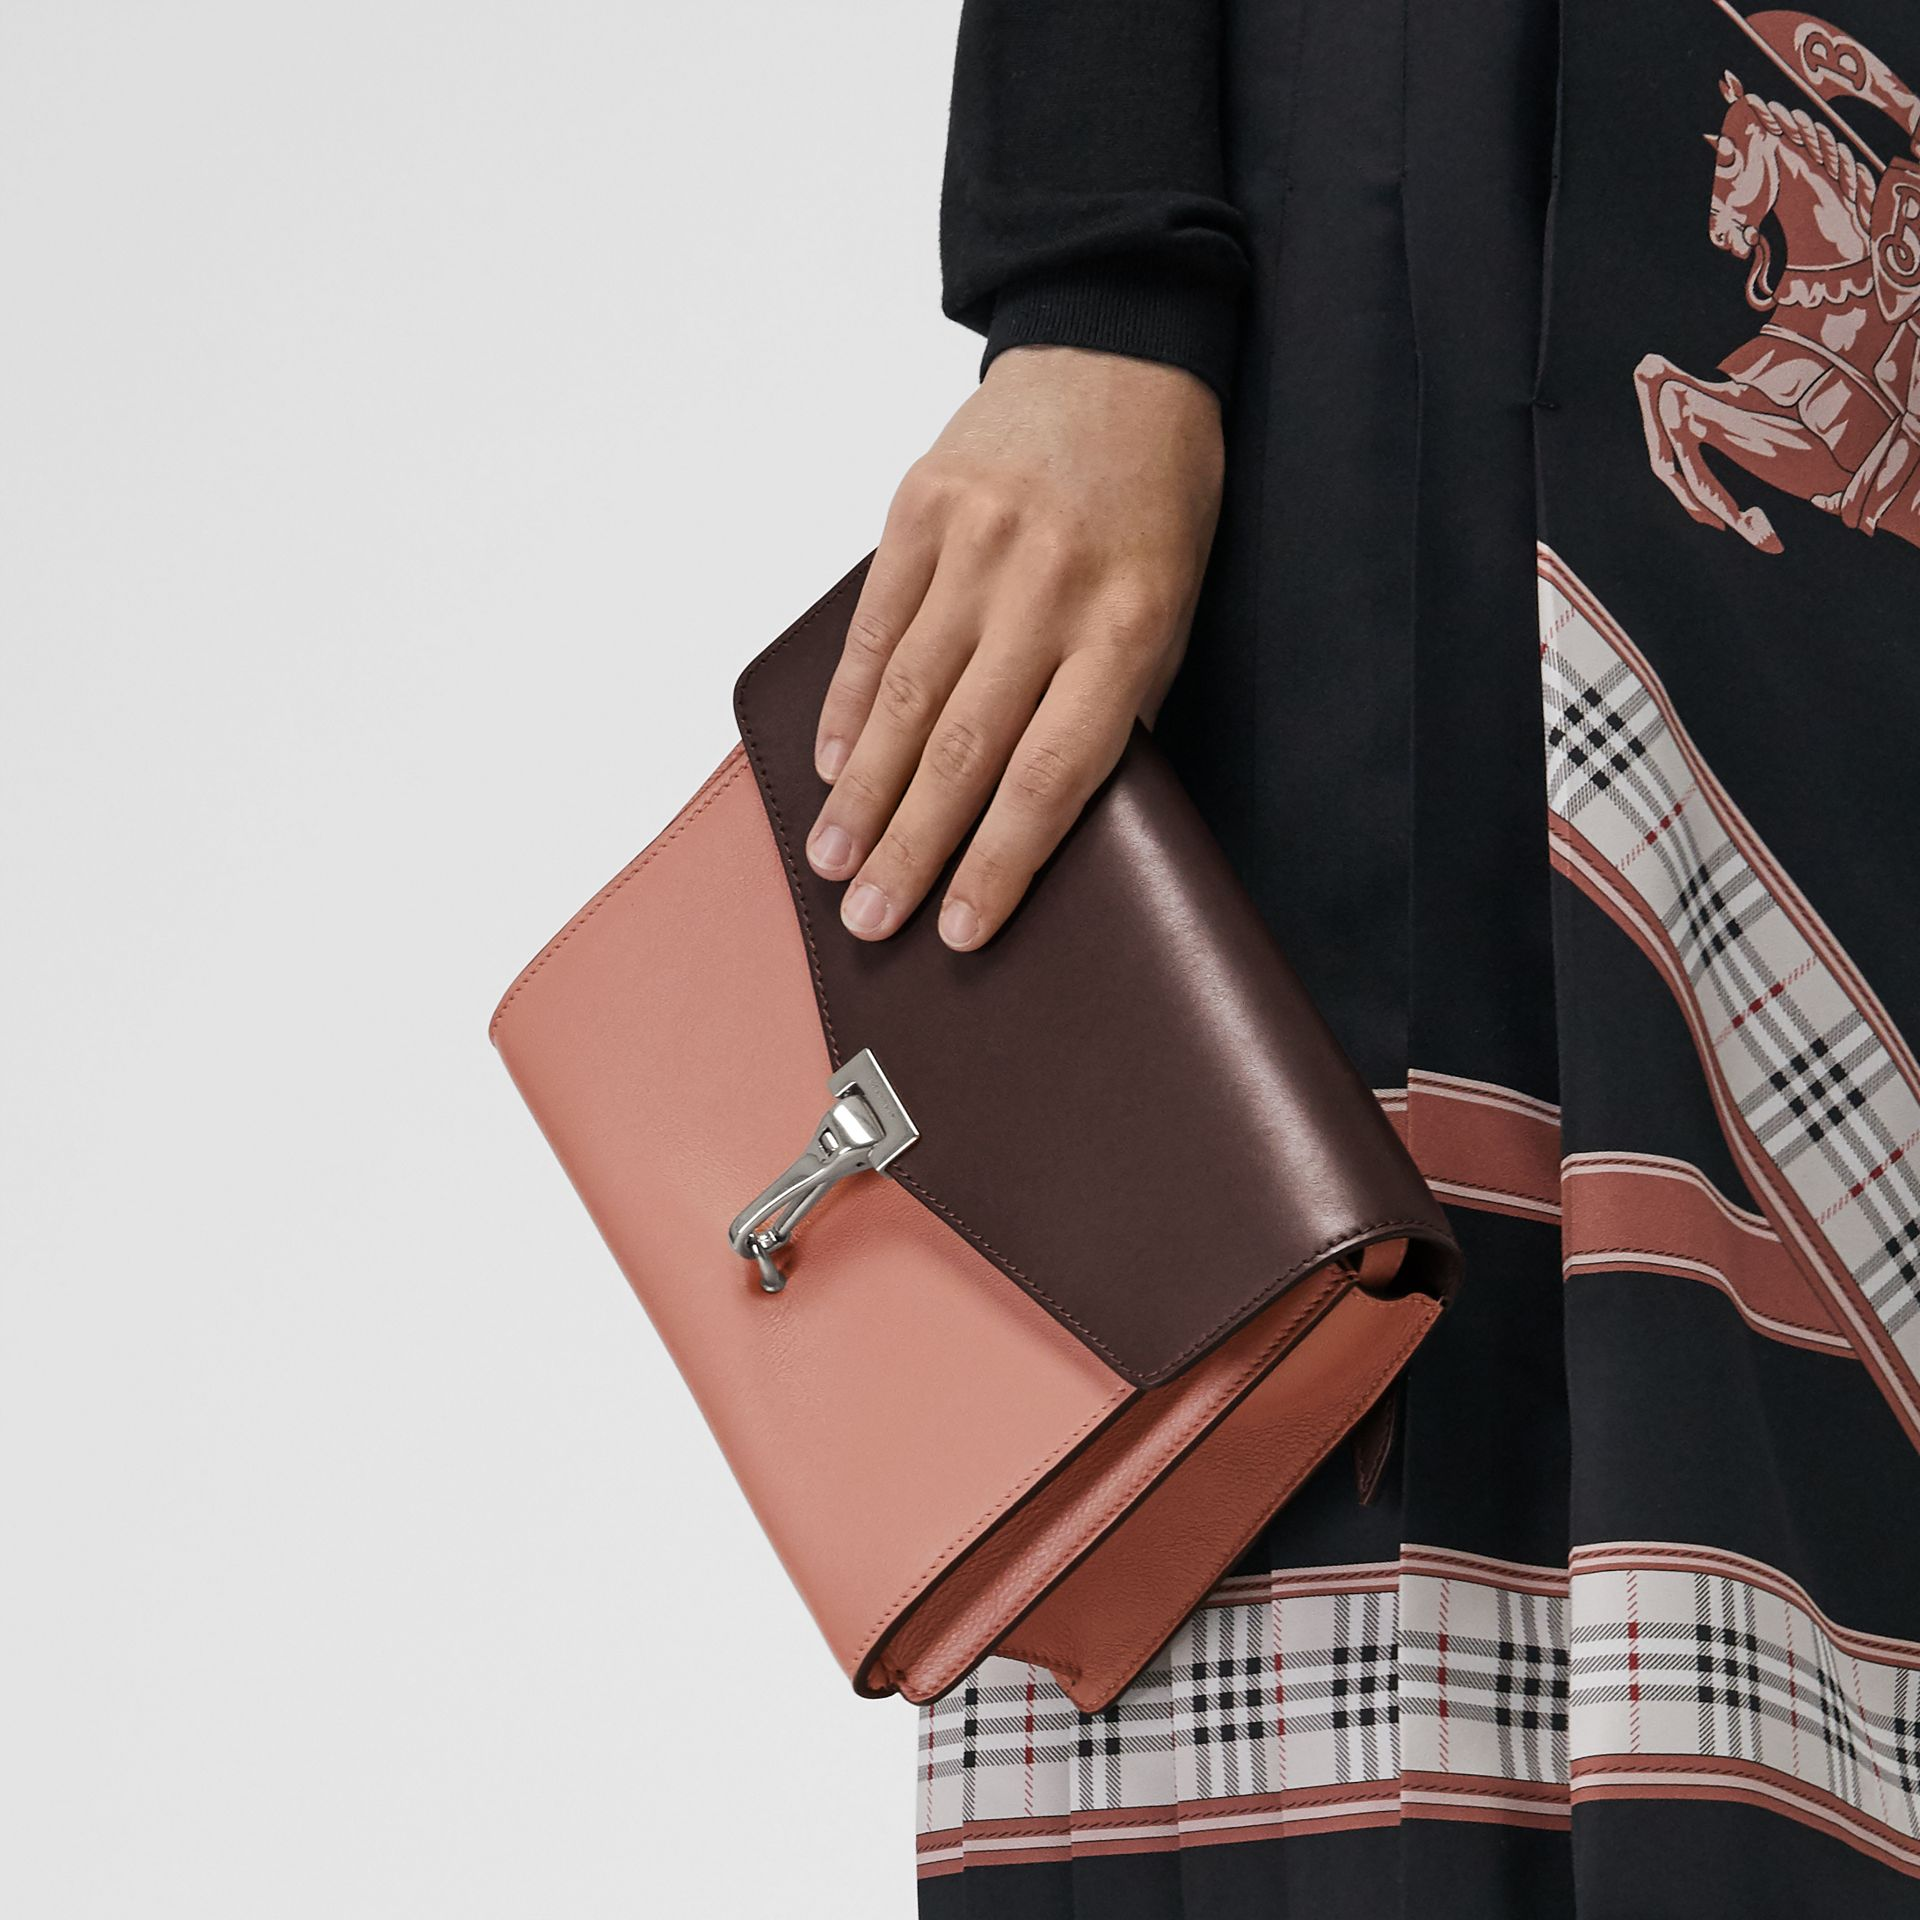 Two-tone Leather Crossbody Bag in Dusty Rose/deep Claret - Women | Burberry - gallery image 2